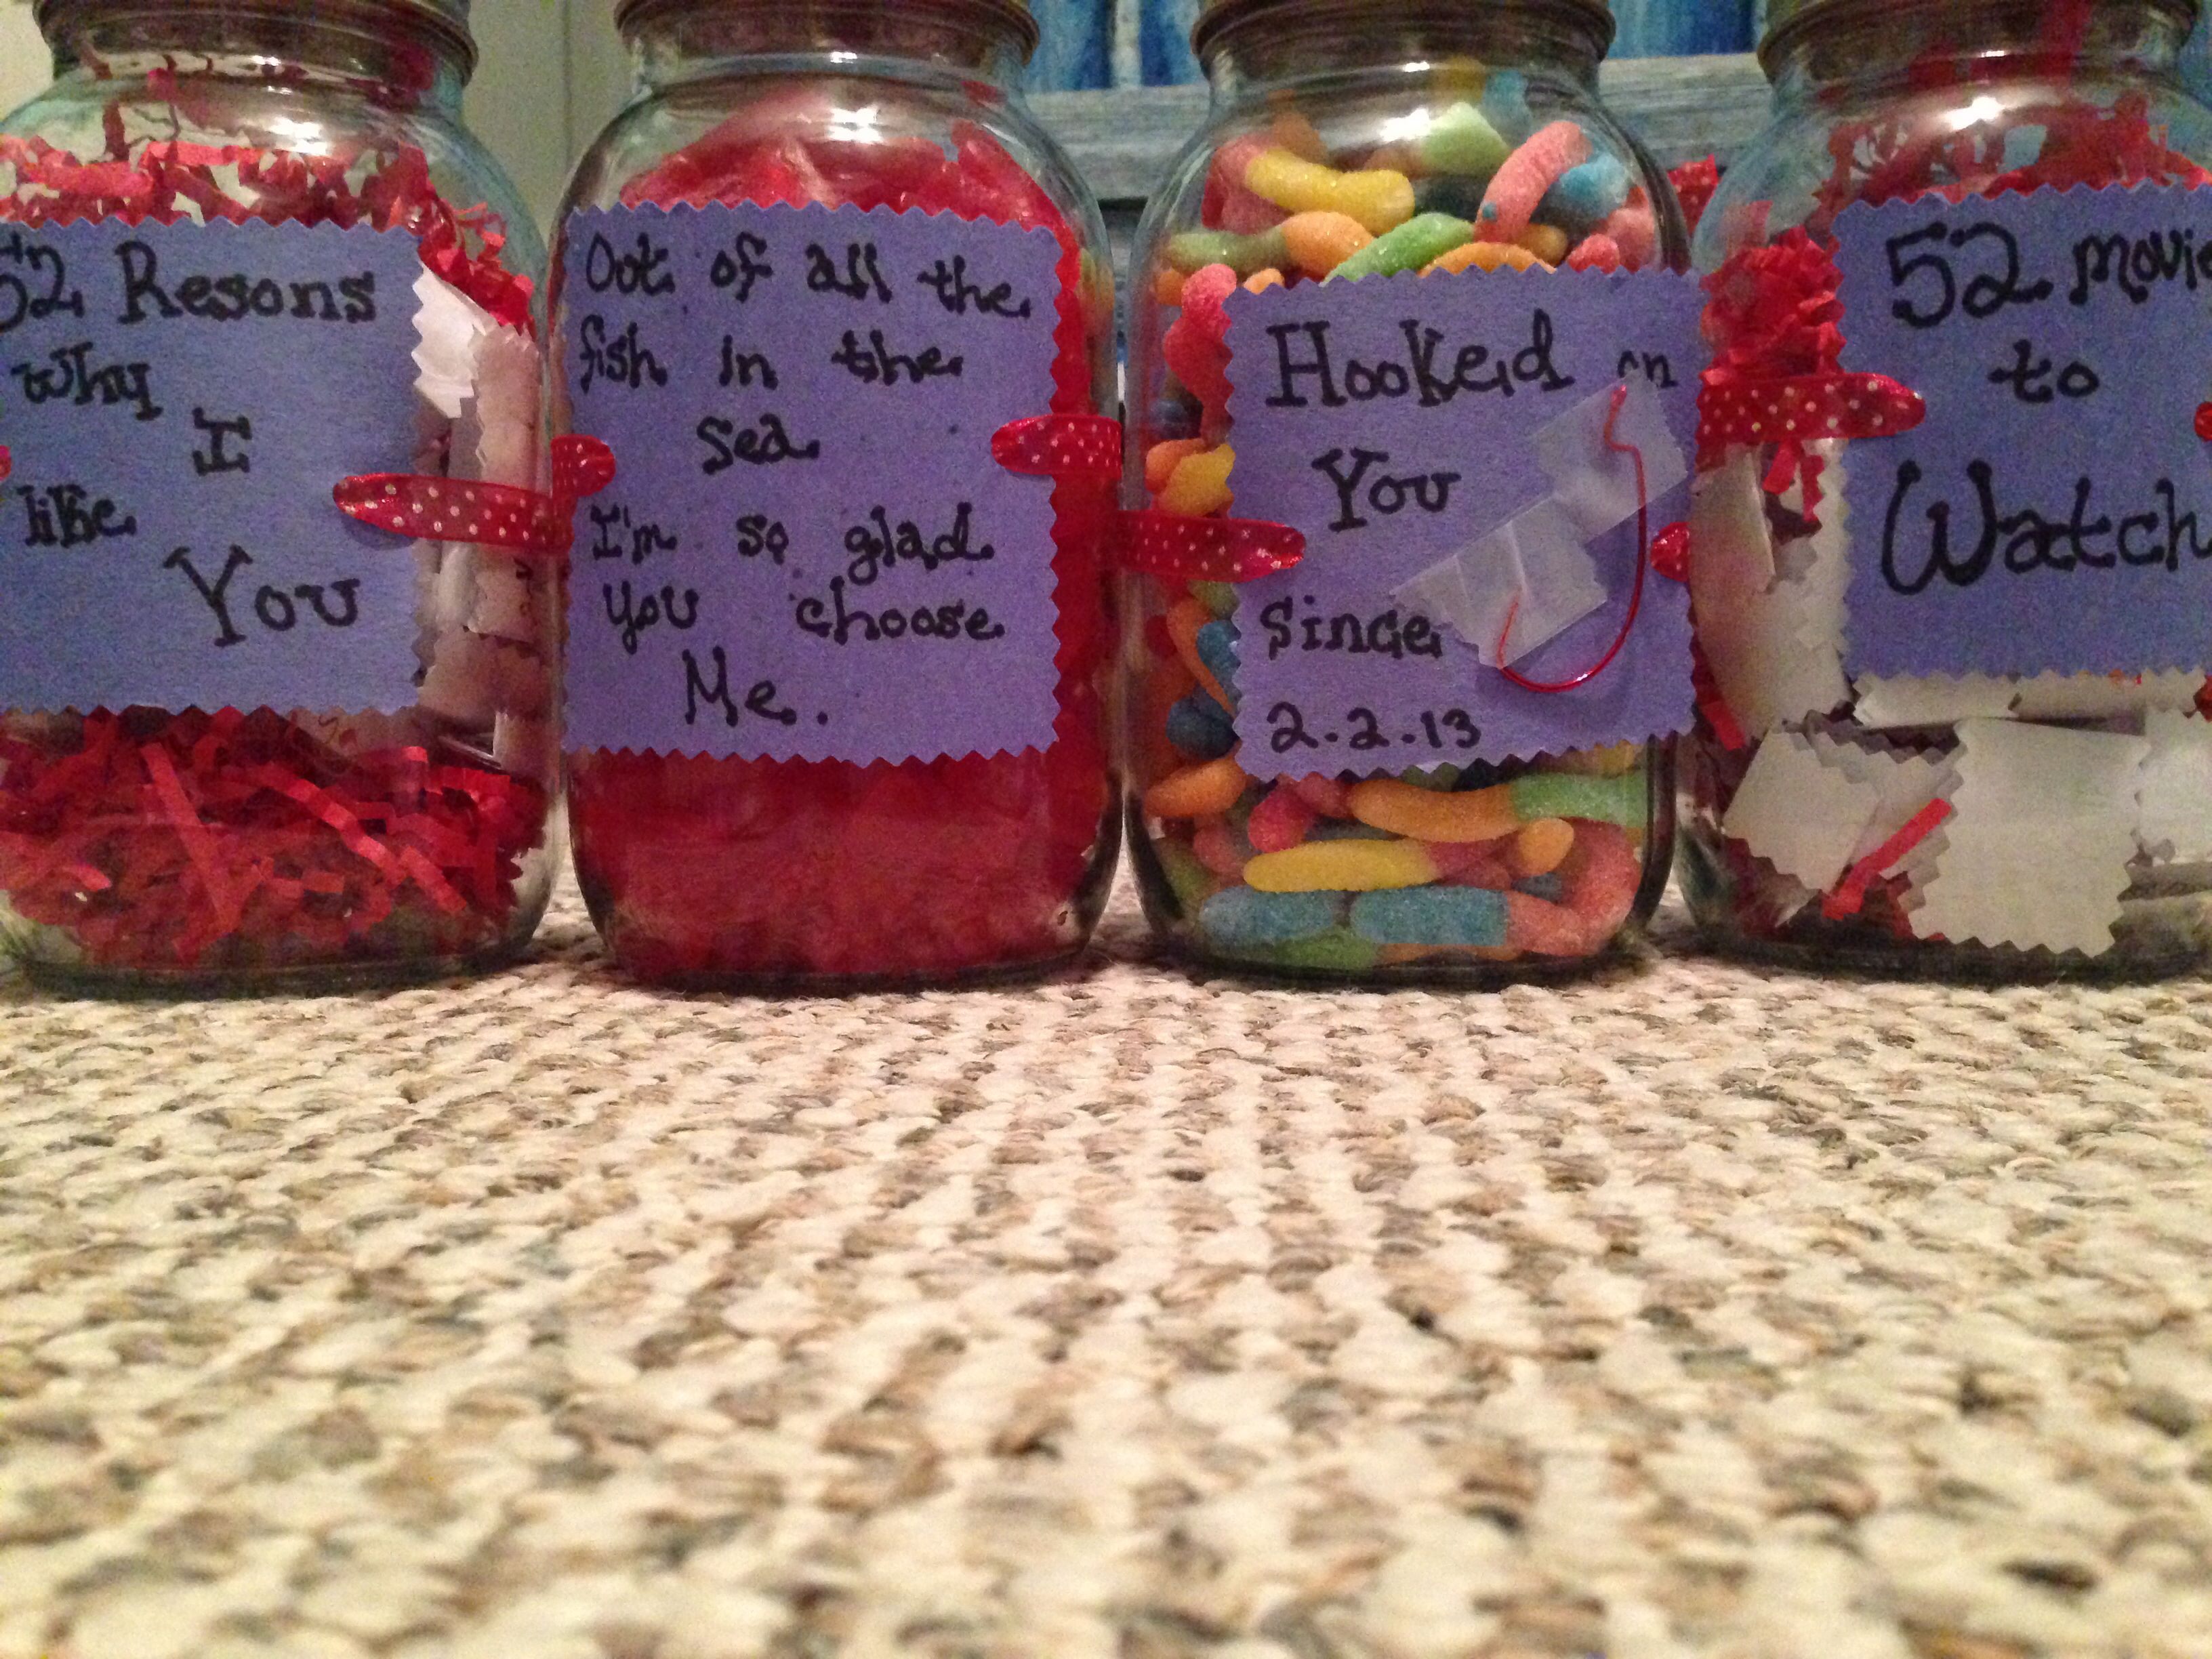 Easy to make DIY gift for valentines day, one year